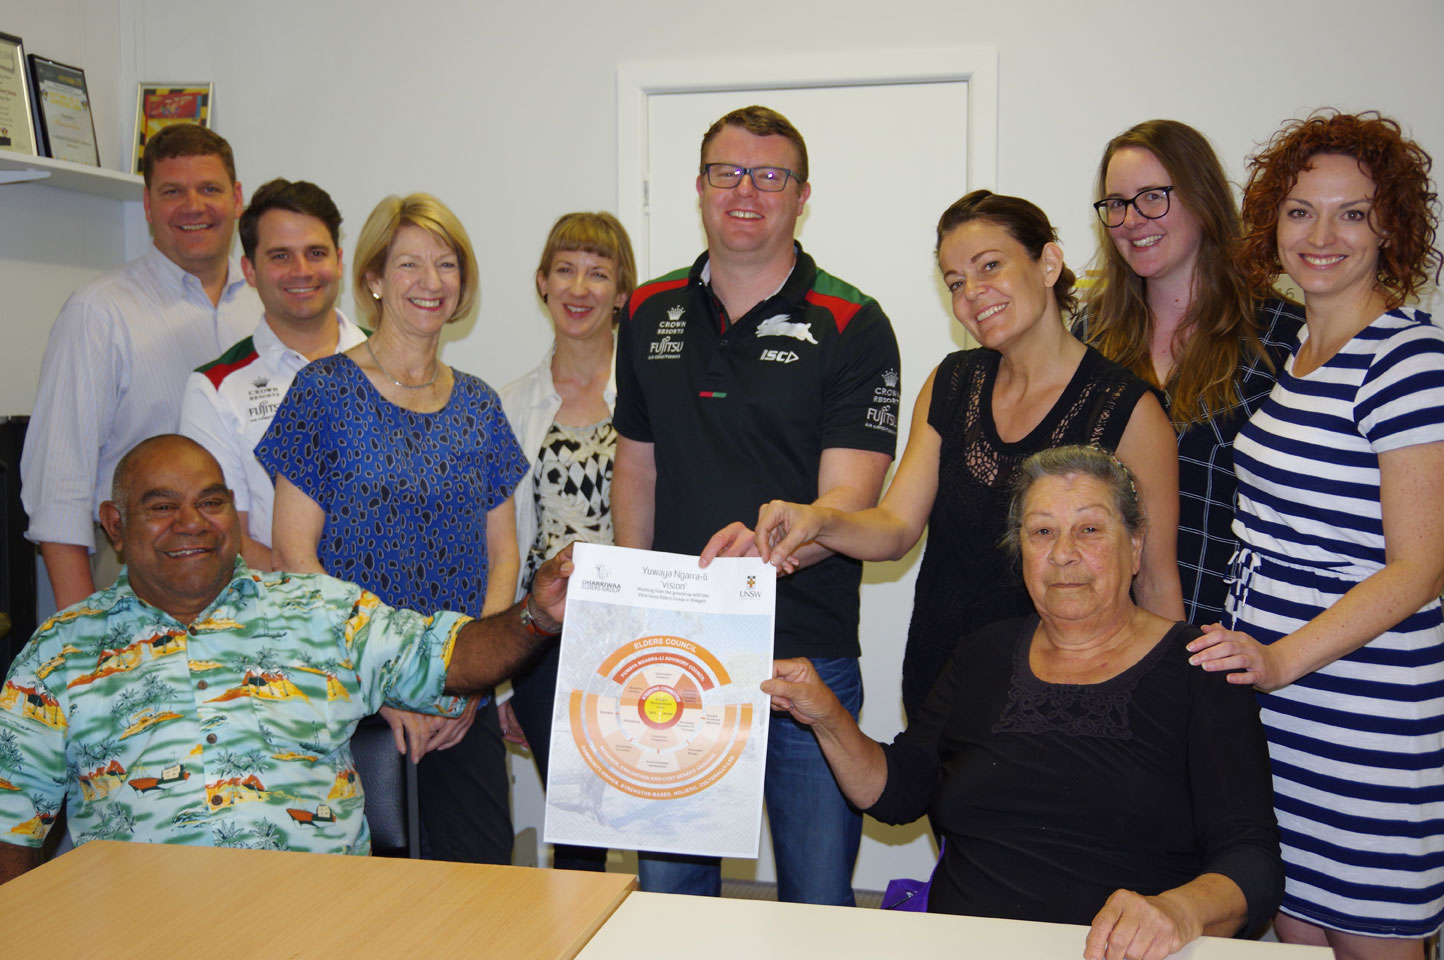 DEG's Speaker Clem Dodd and Secretary Virginia Robinson with UNSW, Souths Cares, Rabbitohs and BCA National partners in Walgett 26/11/16